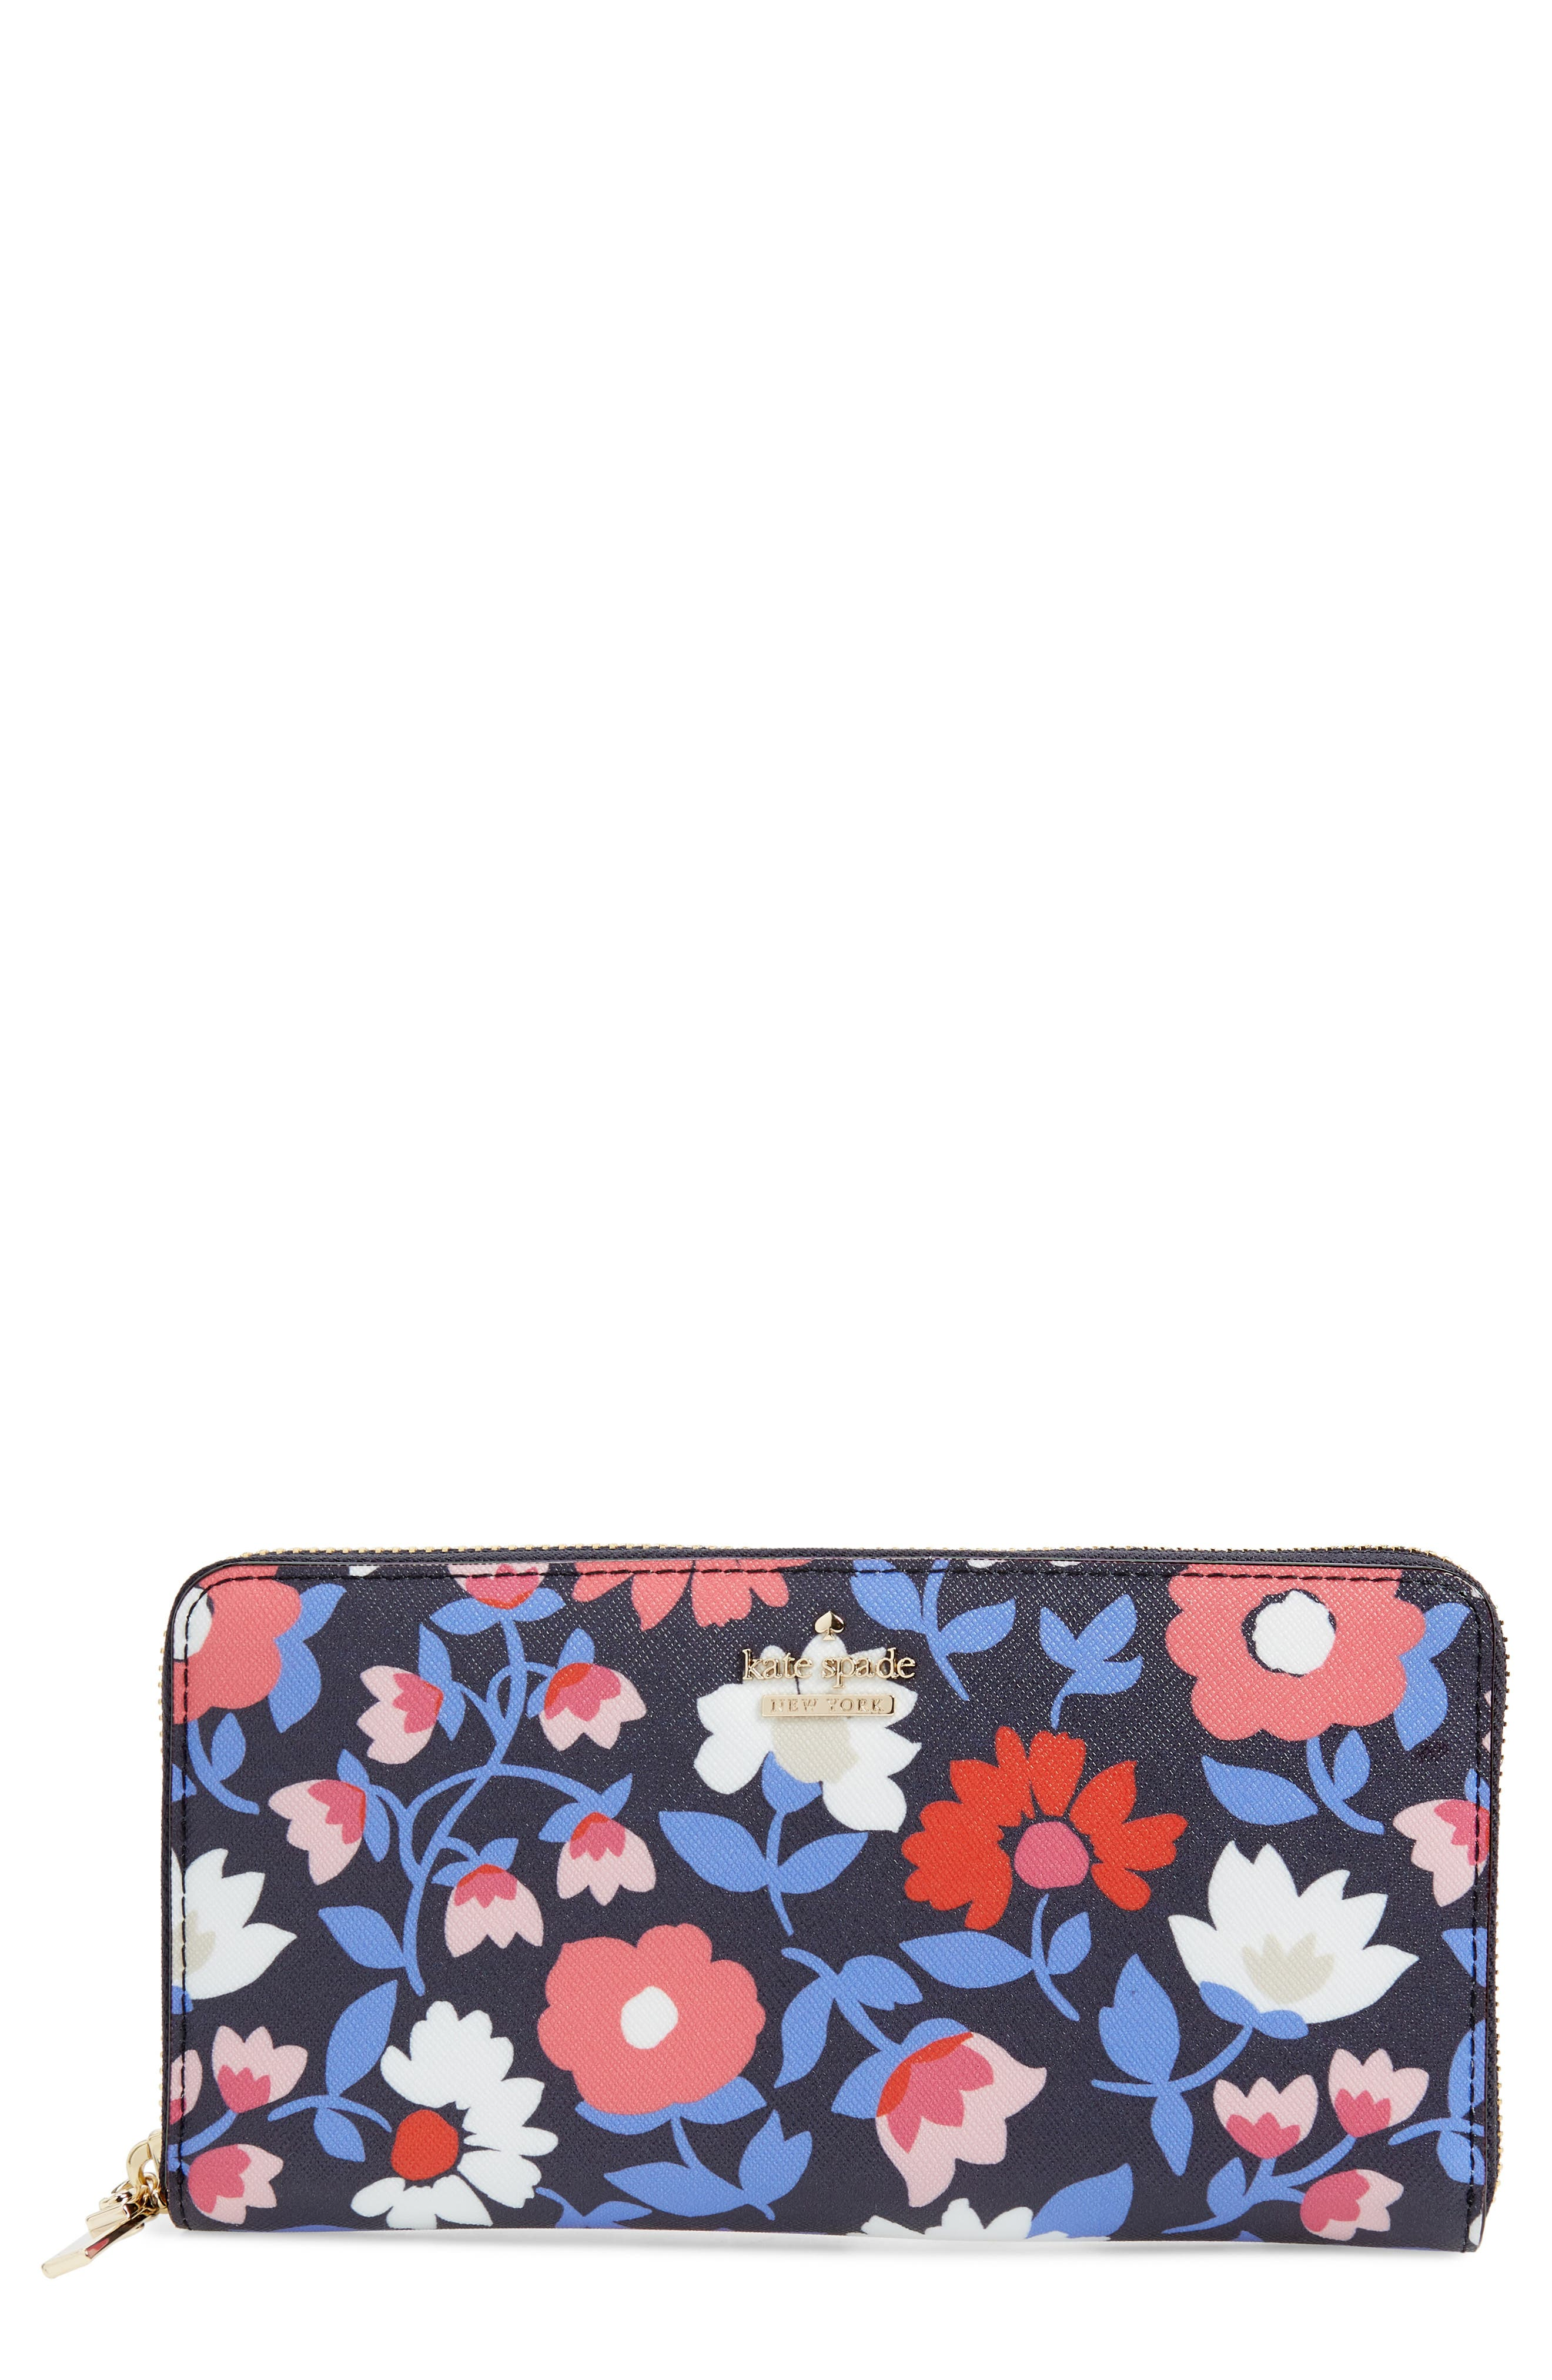 cameron street - daisy lacey zip around wallet,                             Main thumbnail 1, color,                             Multi